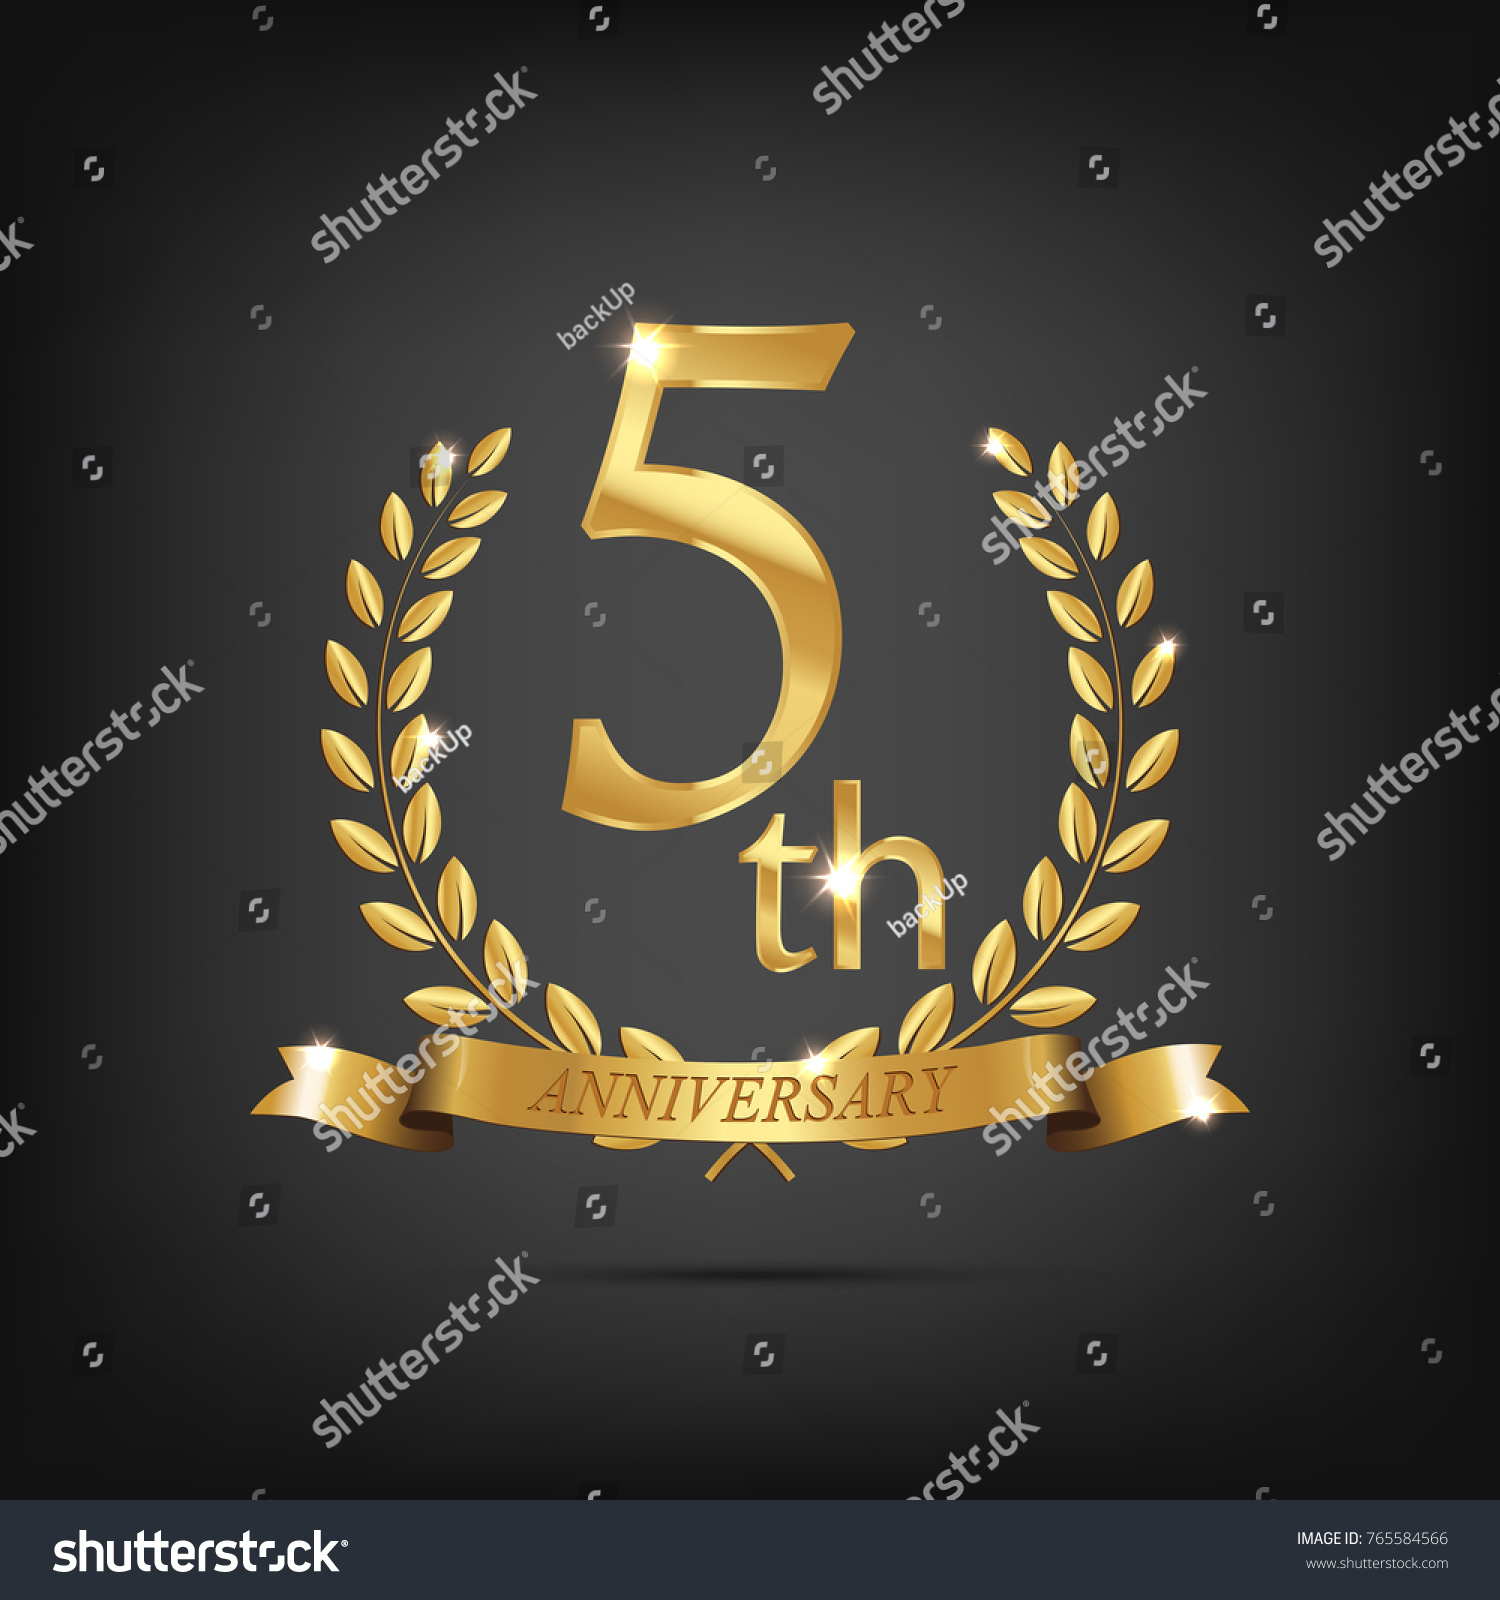 5 anniversary golden symbol golden laurel stock vector 765584566 5 anniversary golden symbol golden laurel wreaths with ribbons and fifth anniversary year symbol on biocorpaavc Gallery